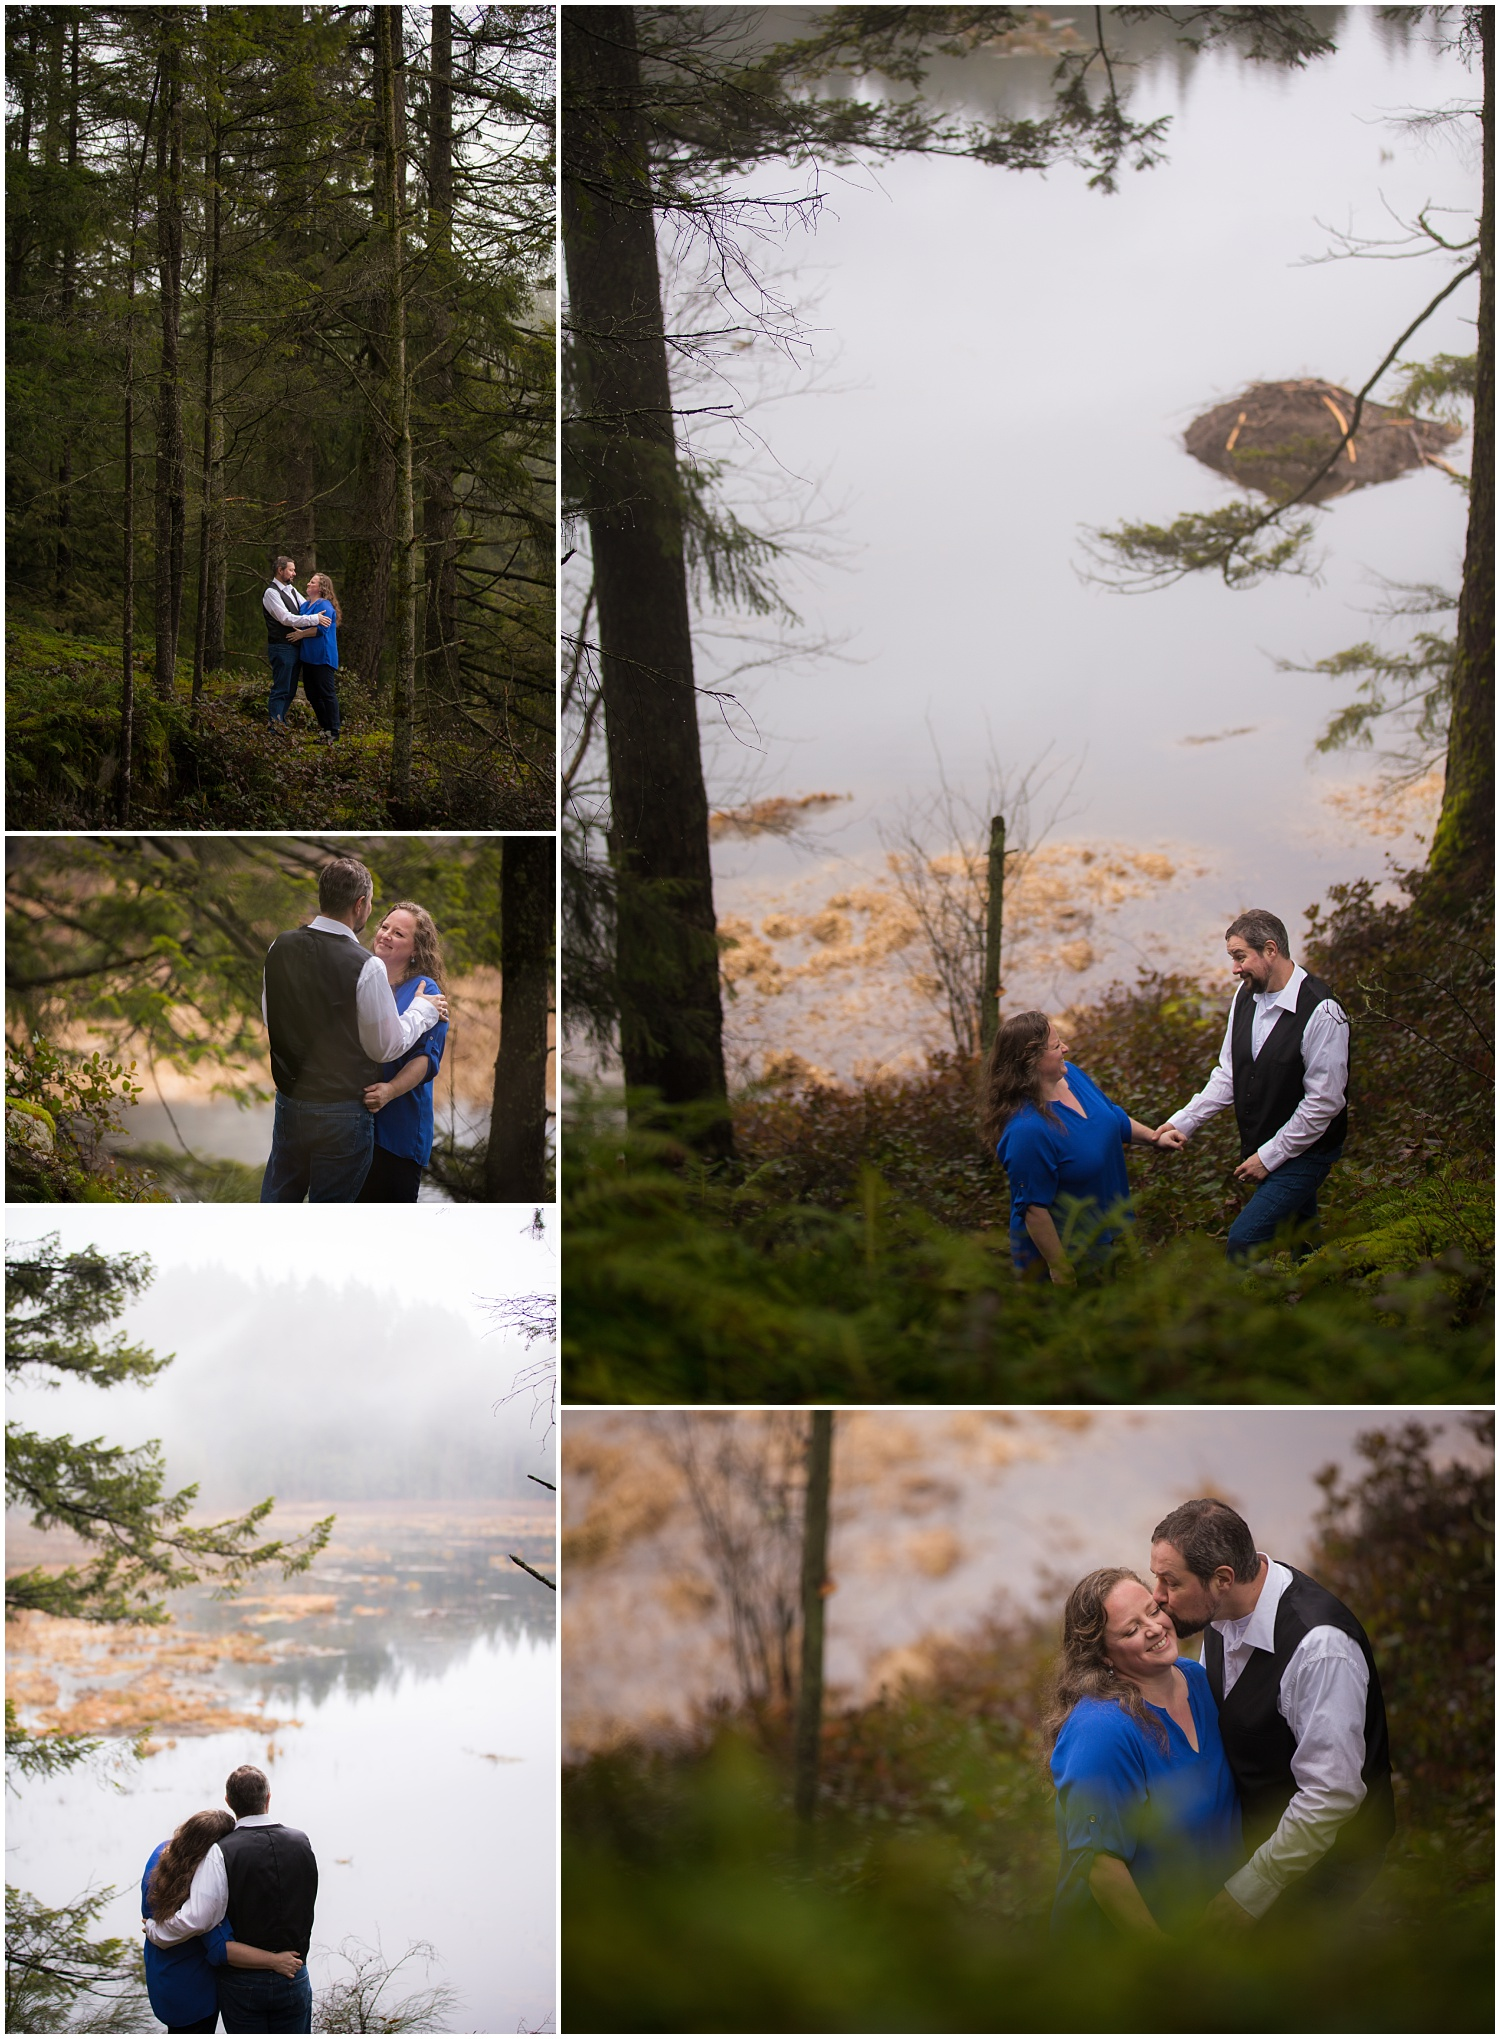 Amazing Day Photography - Minnekhada Engagment Session - Langley Engagement Photographer - Langley Wedding Photographer - Coquitlam Engagement Session (4).jpg